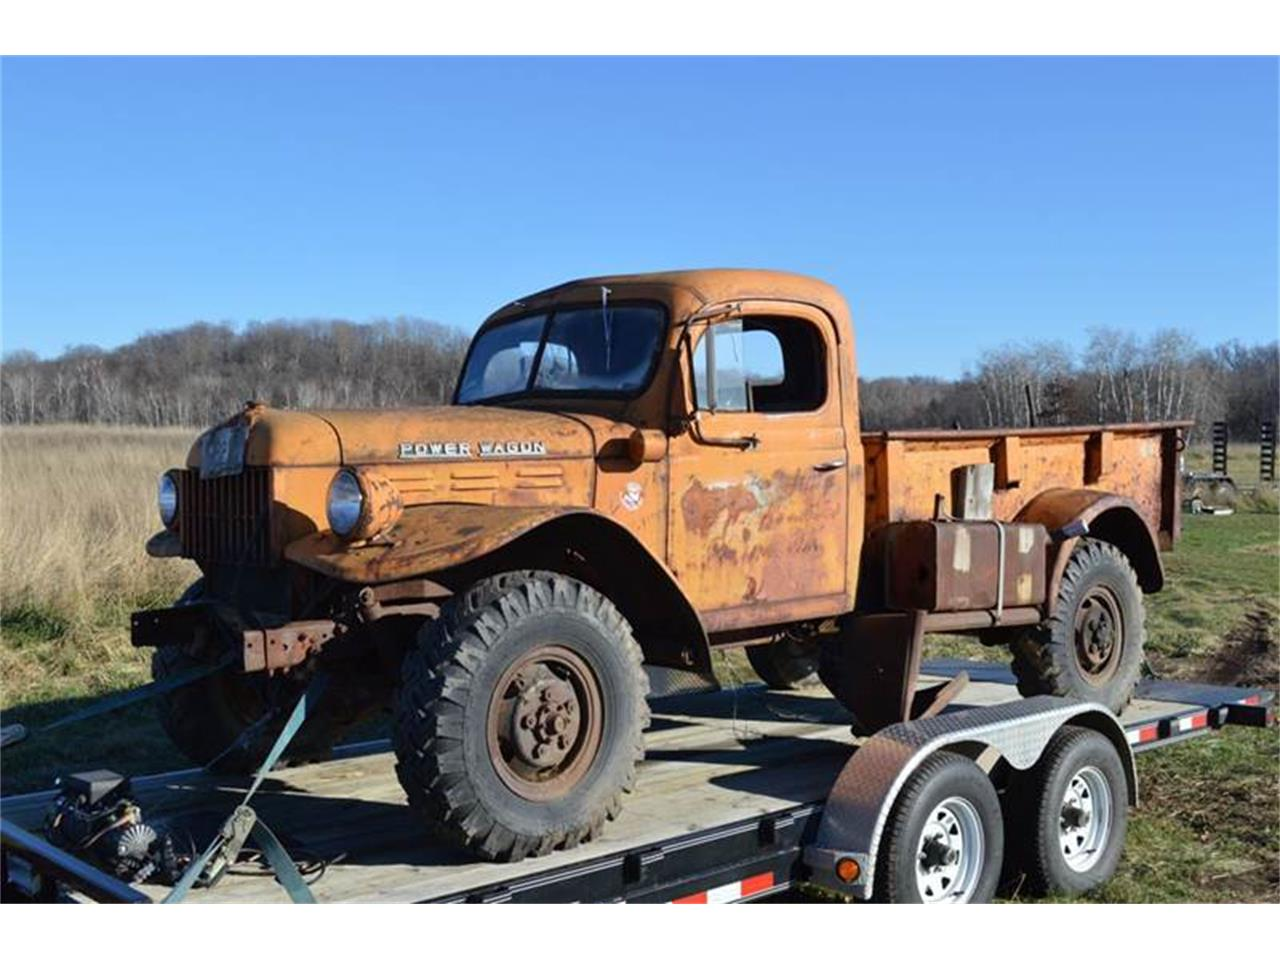 Dodge Power Wagon For Sale >> 1951 Dodge Power Wagon For Sale Classiccars Com Cc 657564